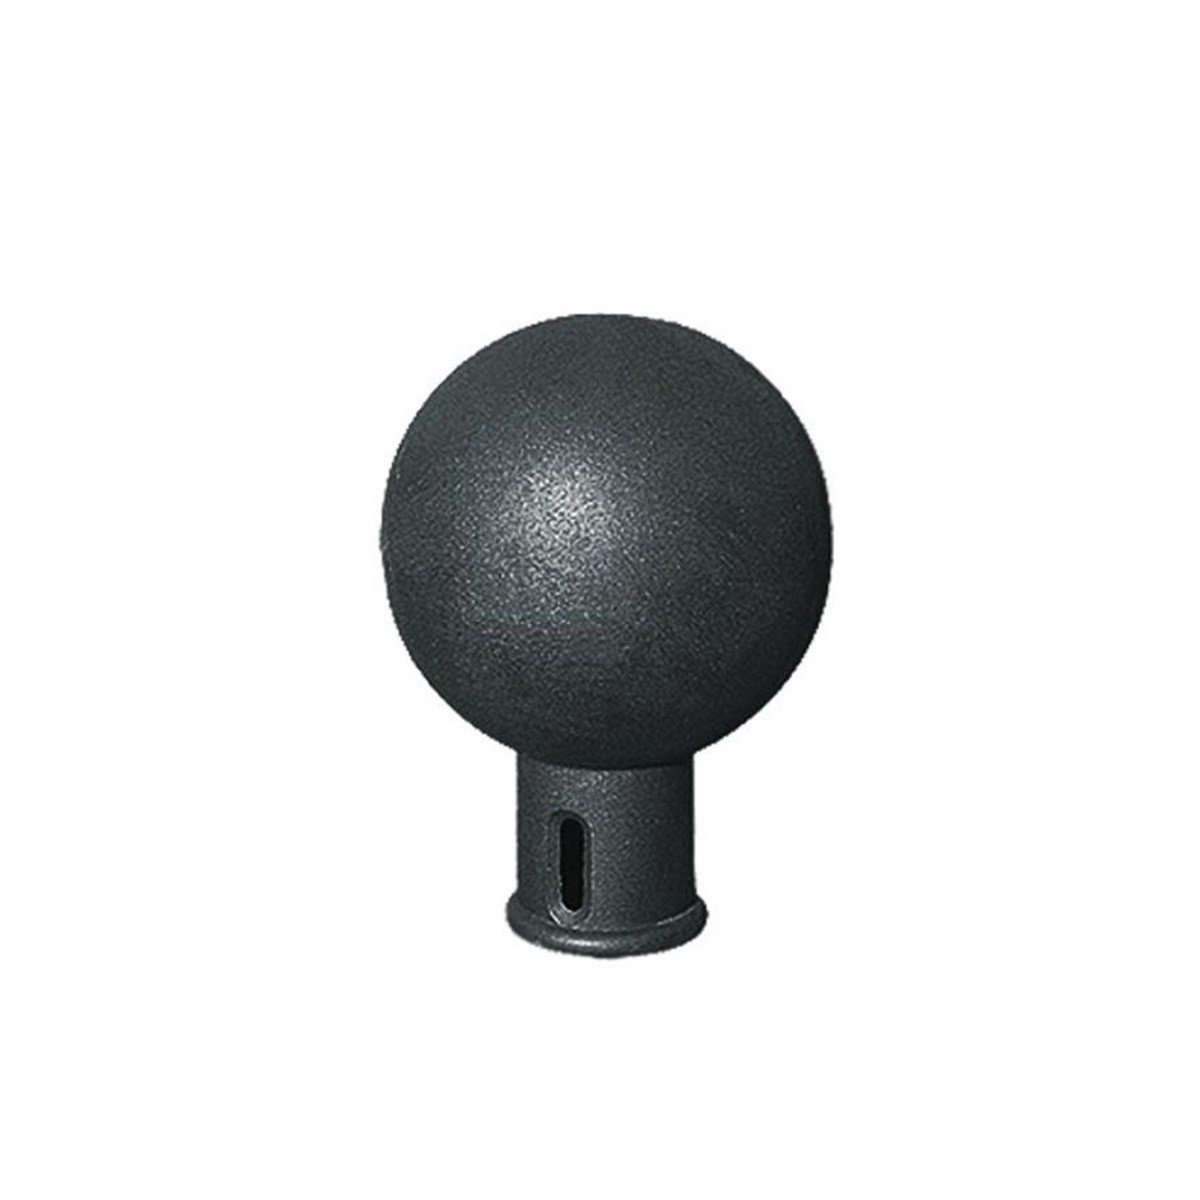 Small bola bollard type of 300Ø - C-44A